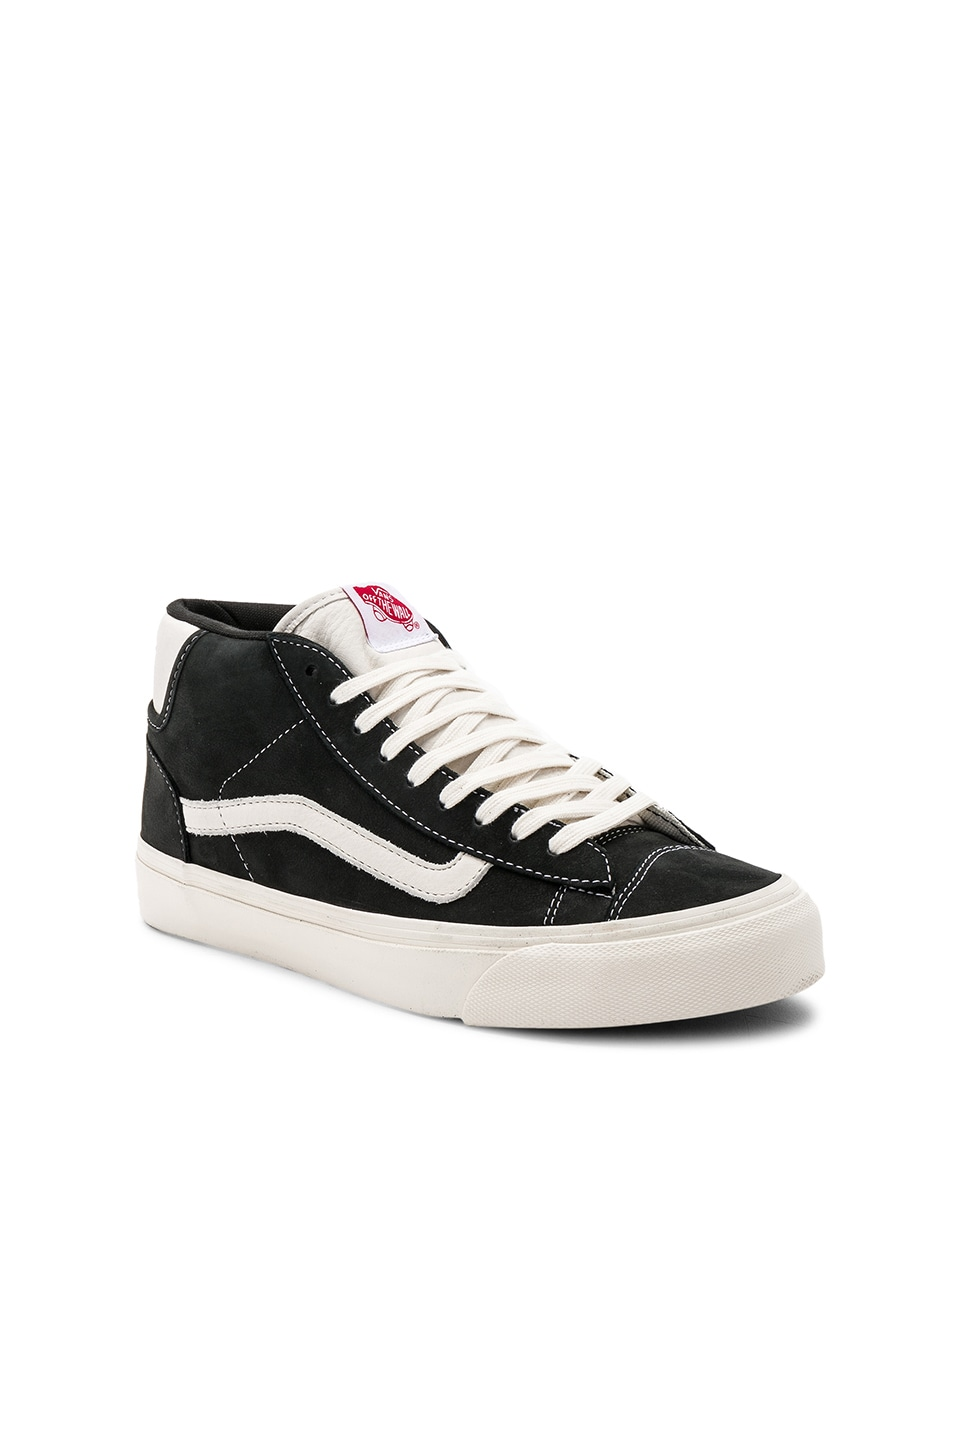 Image 1 of Vans Vault OG Mid Skool LX in Black